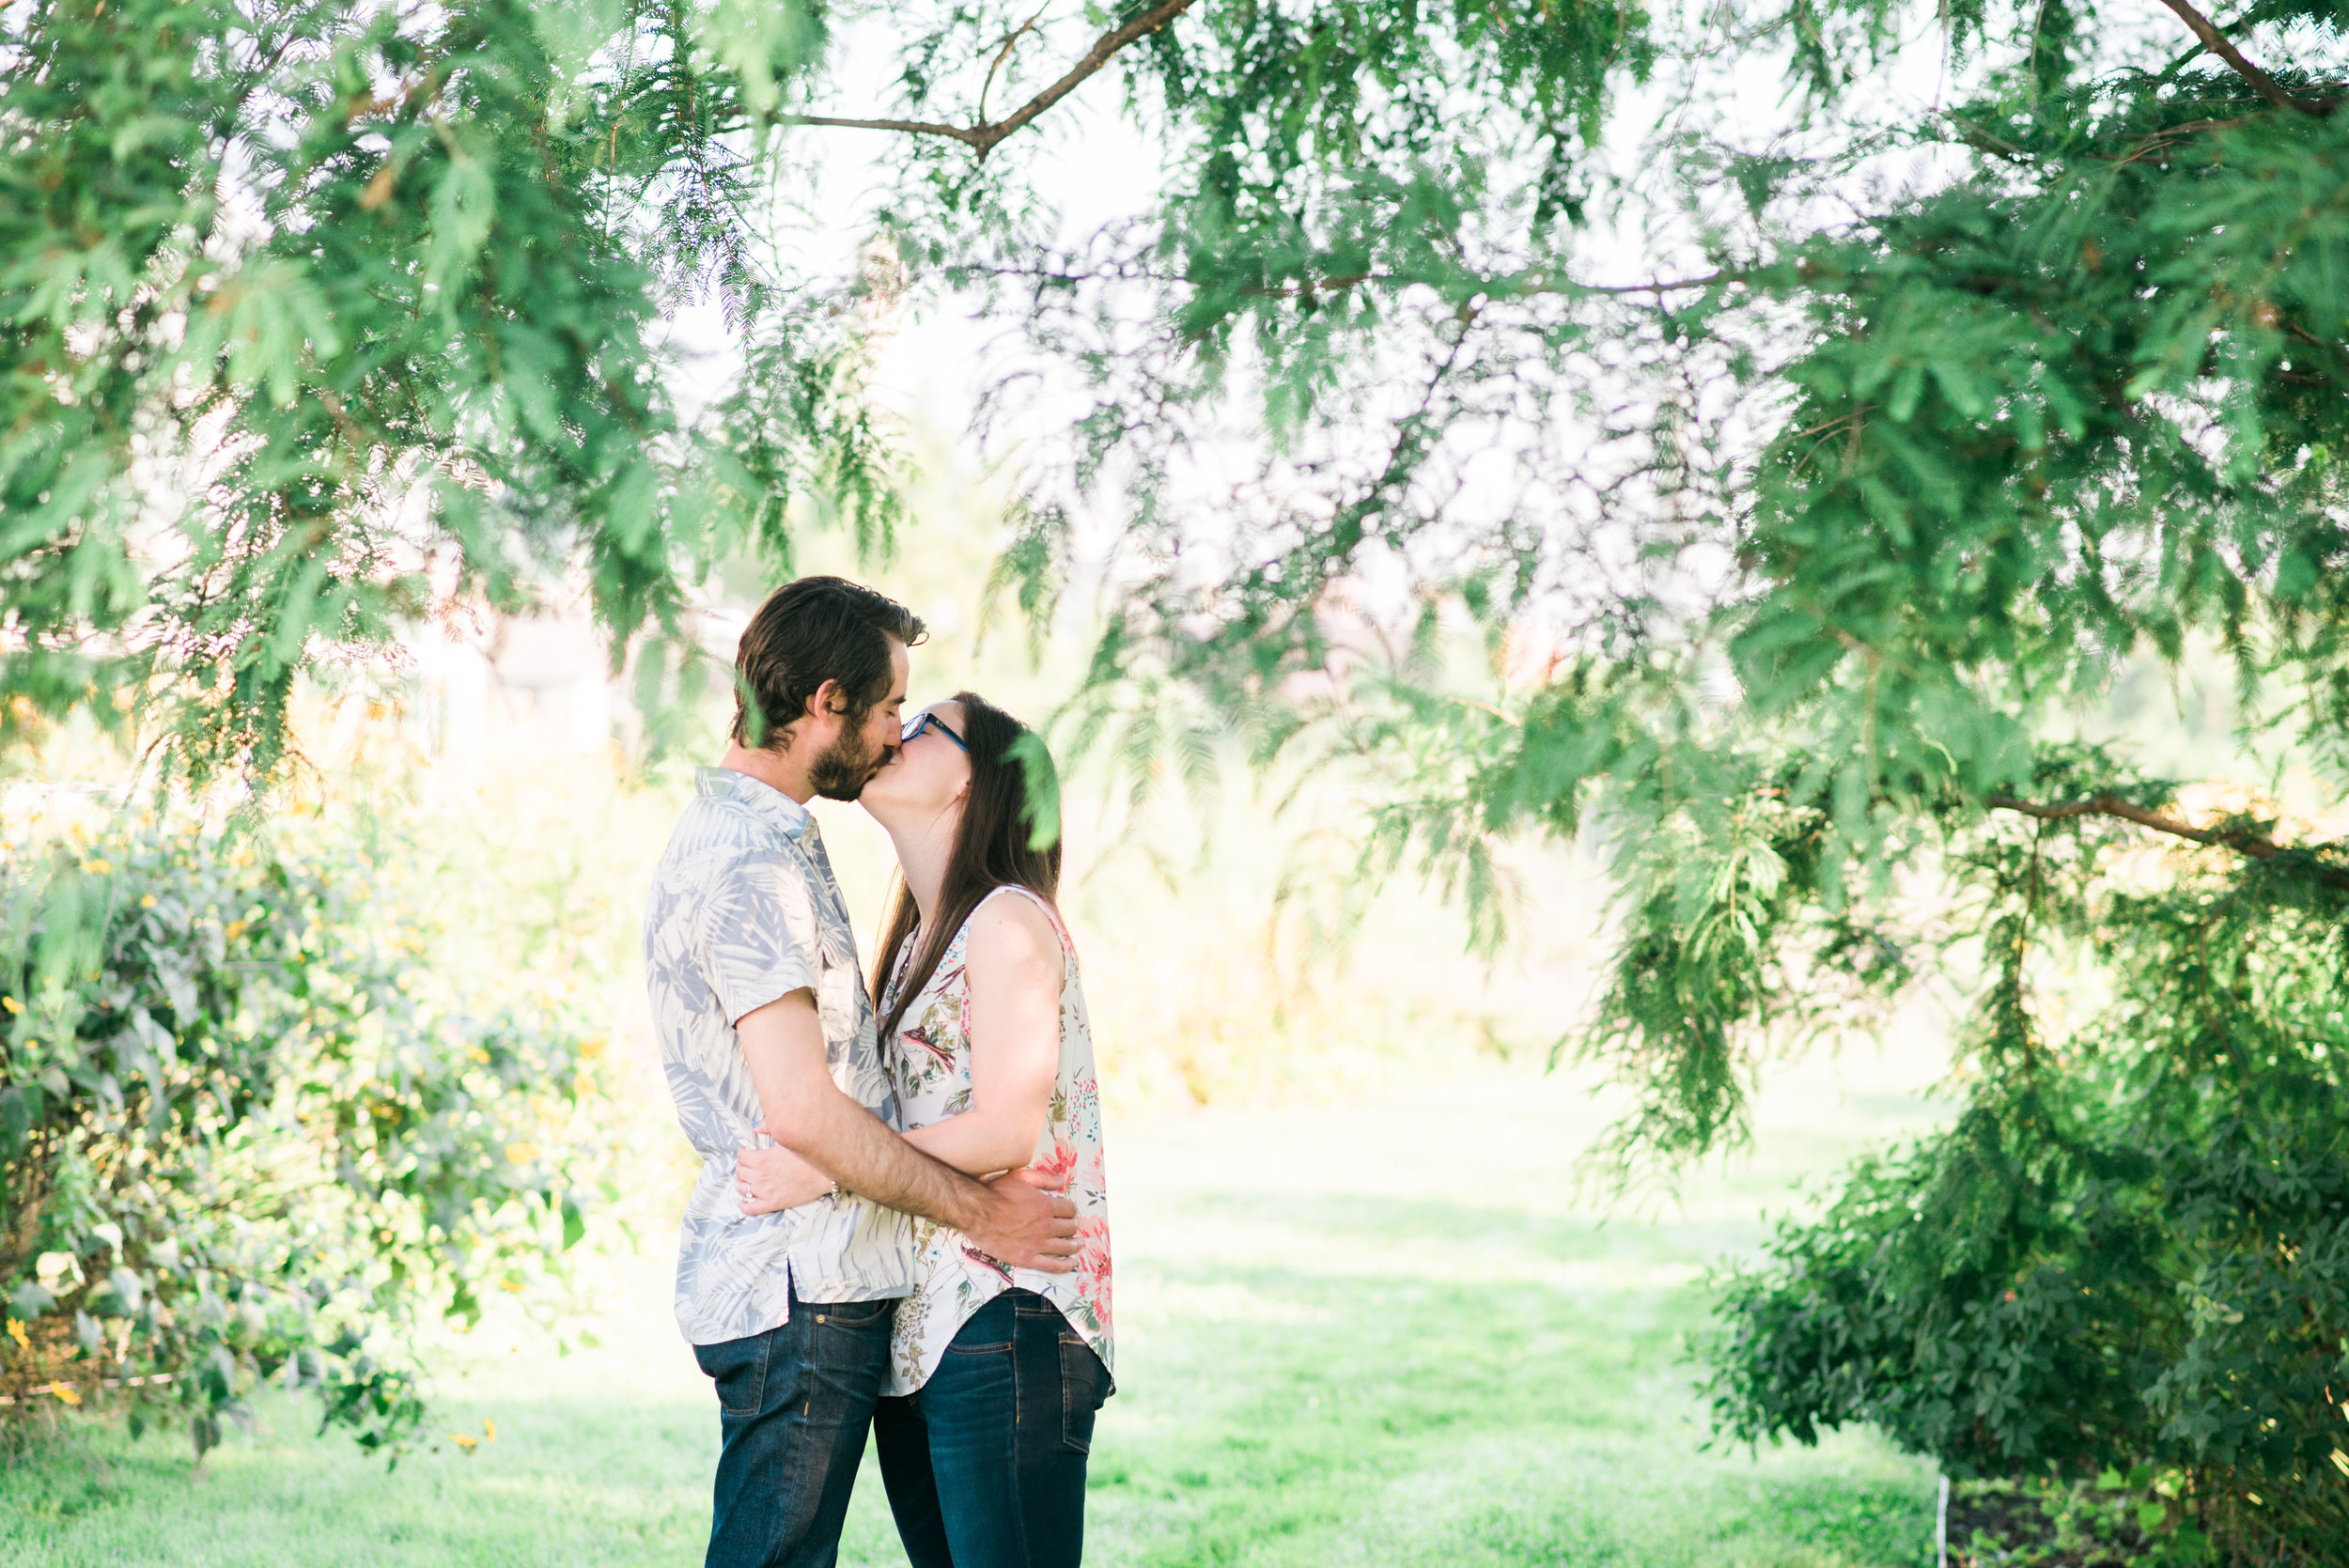 pittsburgh wedding photographer oakland phipps panther hollow